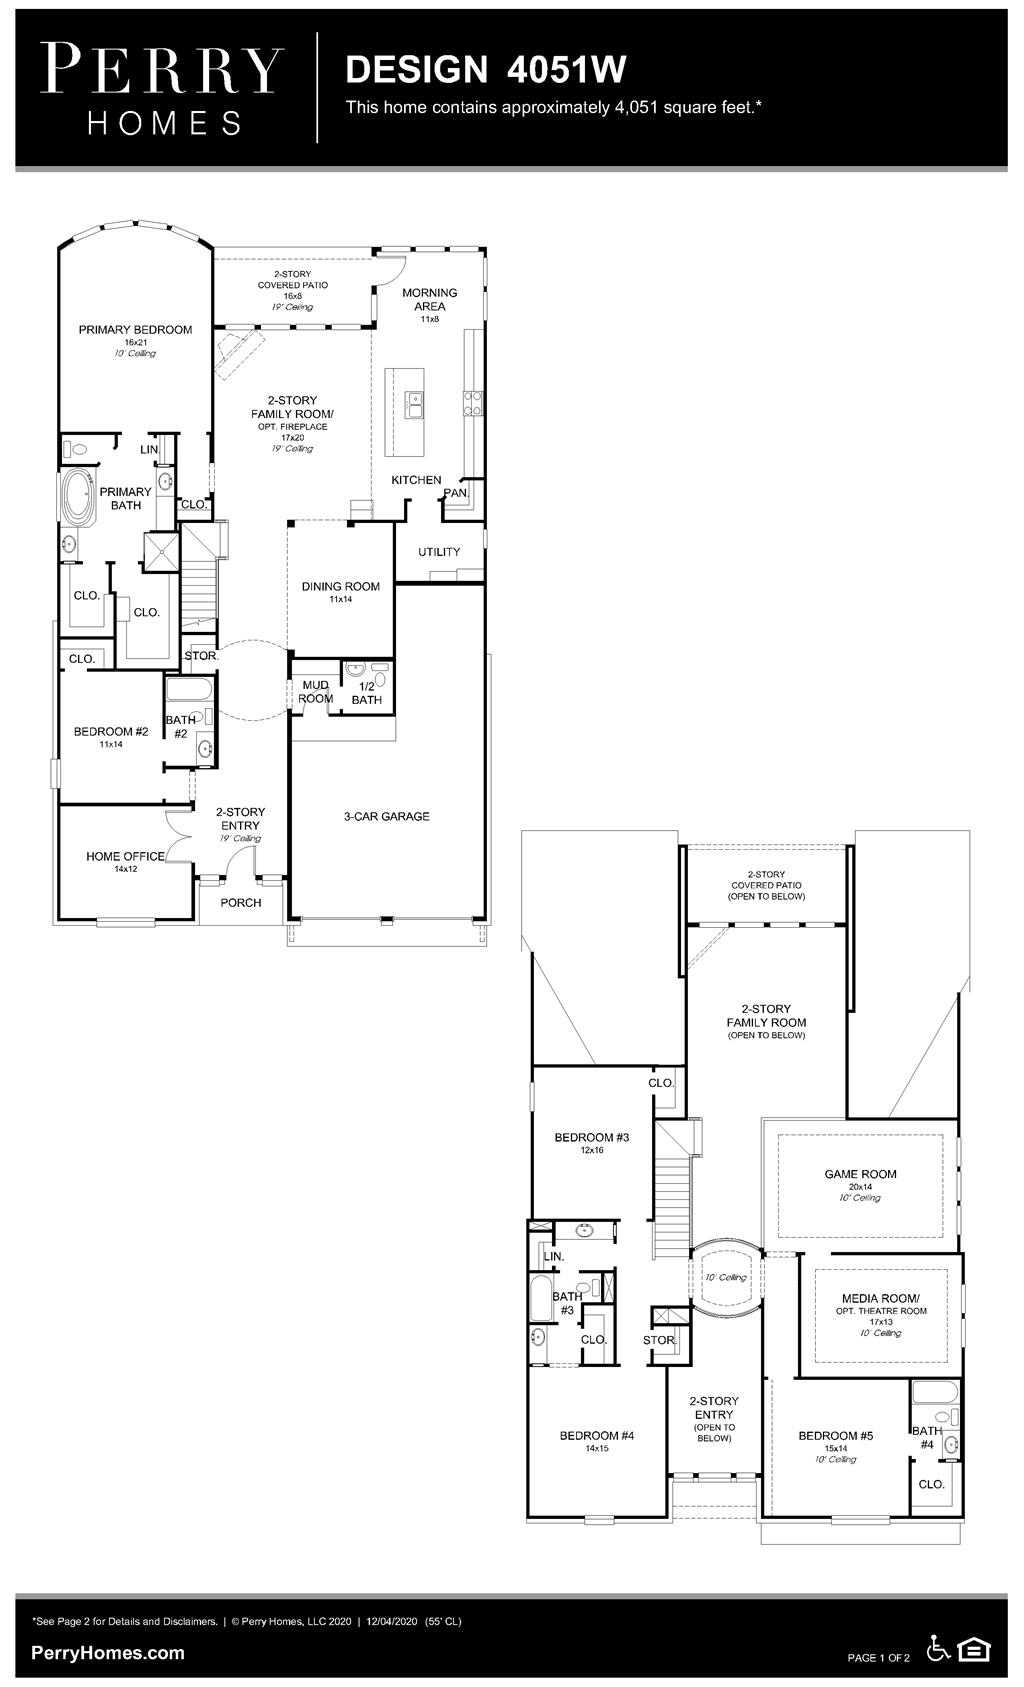 Floor Plan for 4051W